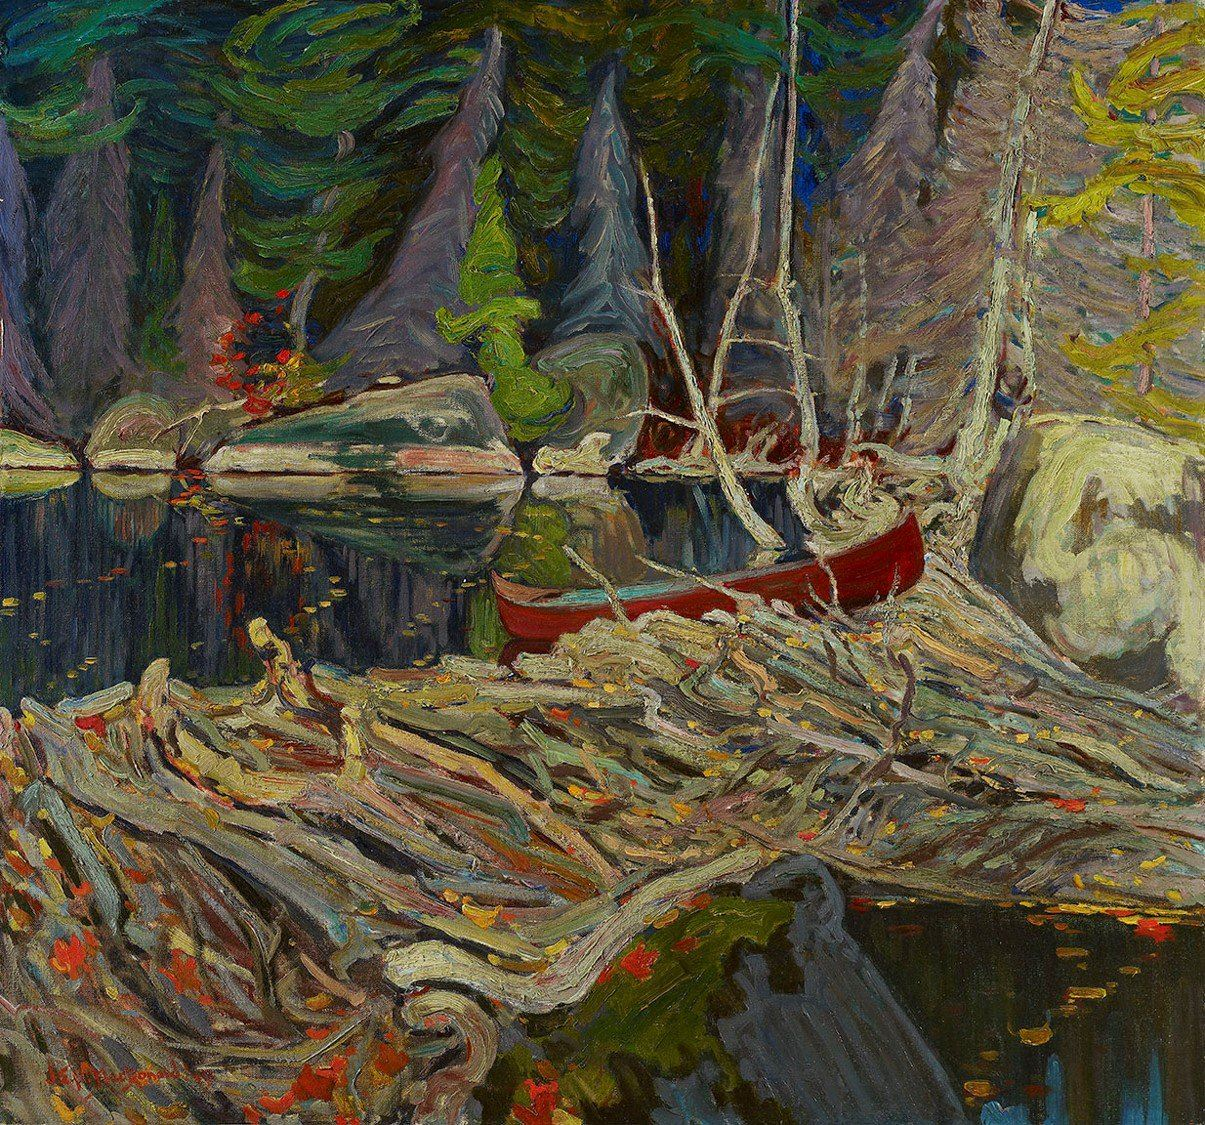 J.E.H. MacDonald. The Beaver Dam, 1919. Oil on canvas, Art Gallery of Ontario. Gift from the Reuben and Kate Leonard Canadian Fund, 1926. Photo © Art Gallery of Ontario, 840.